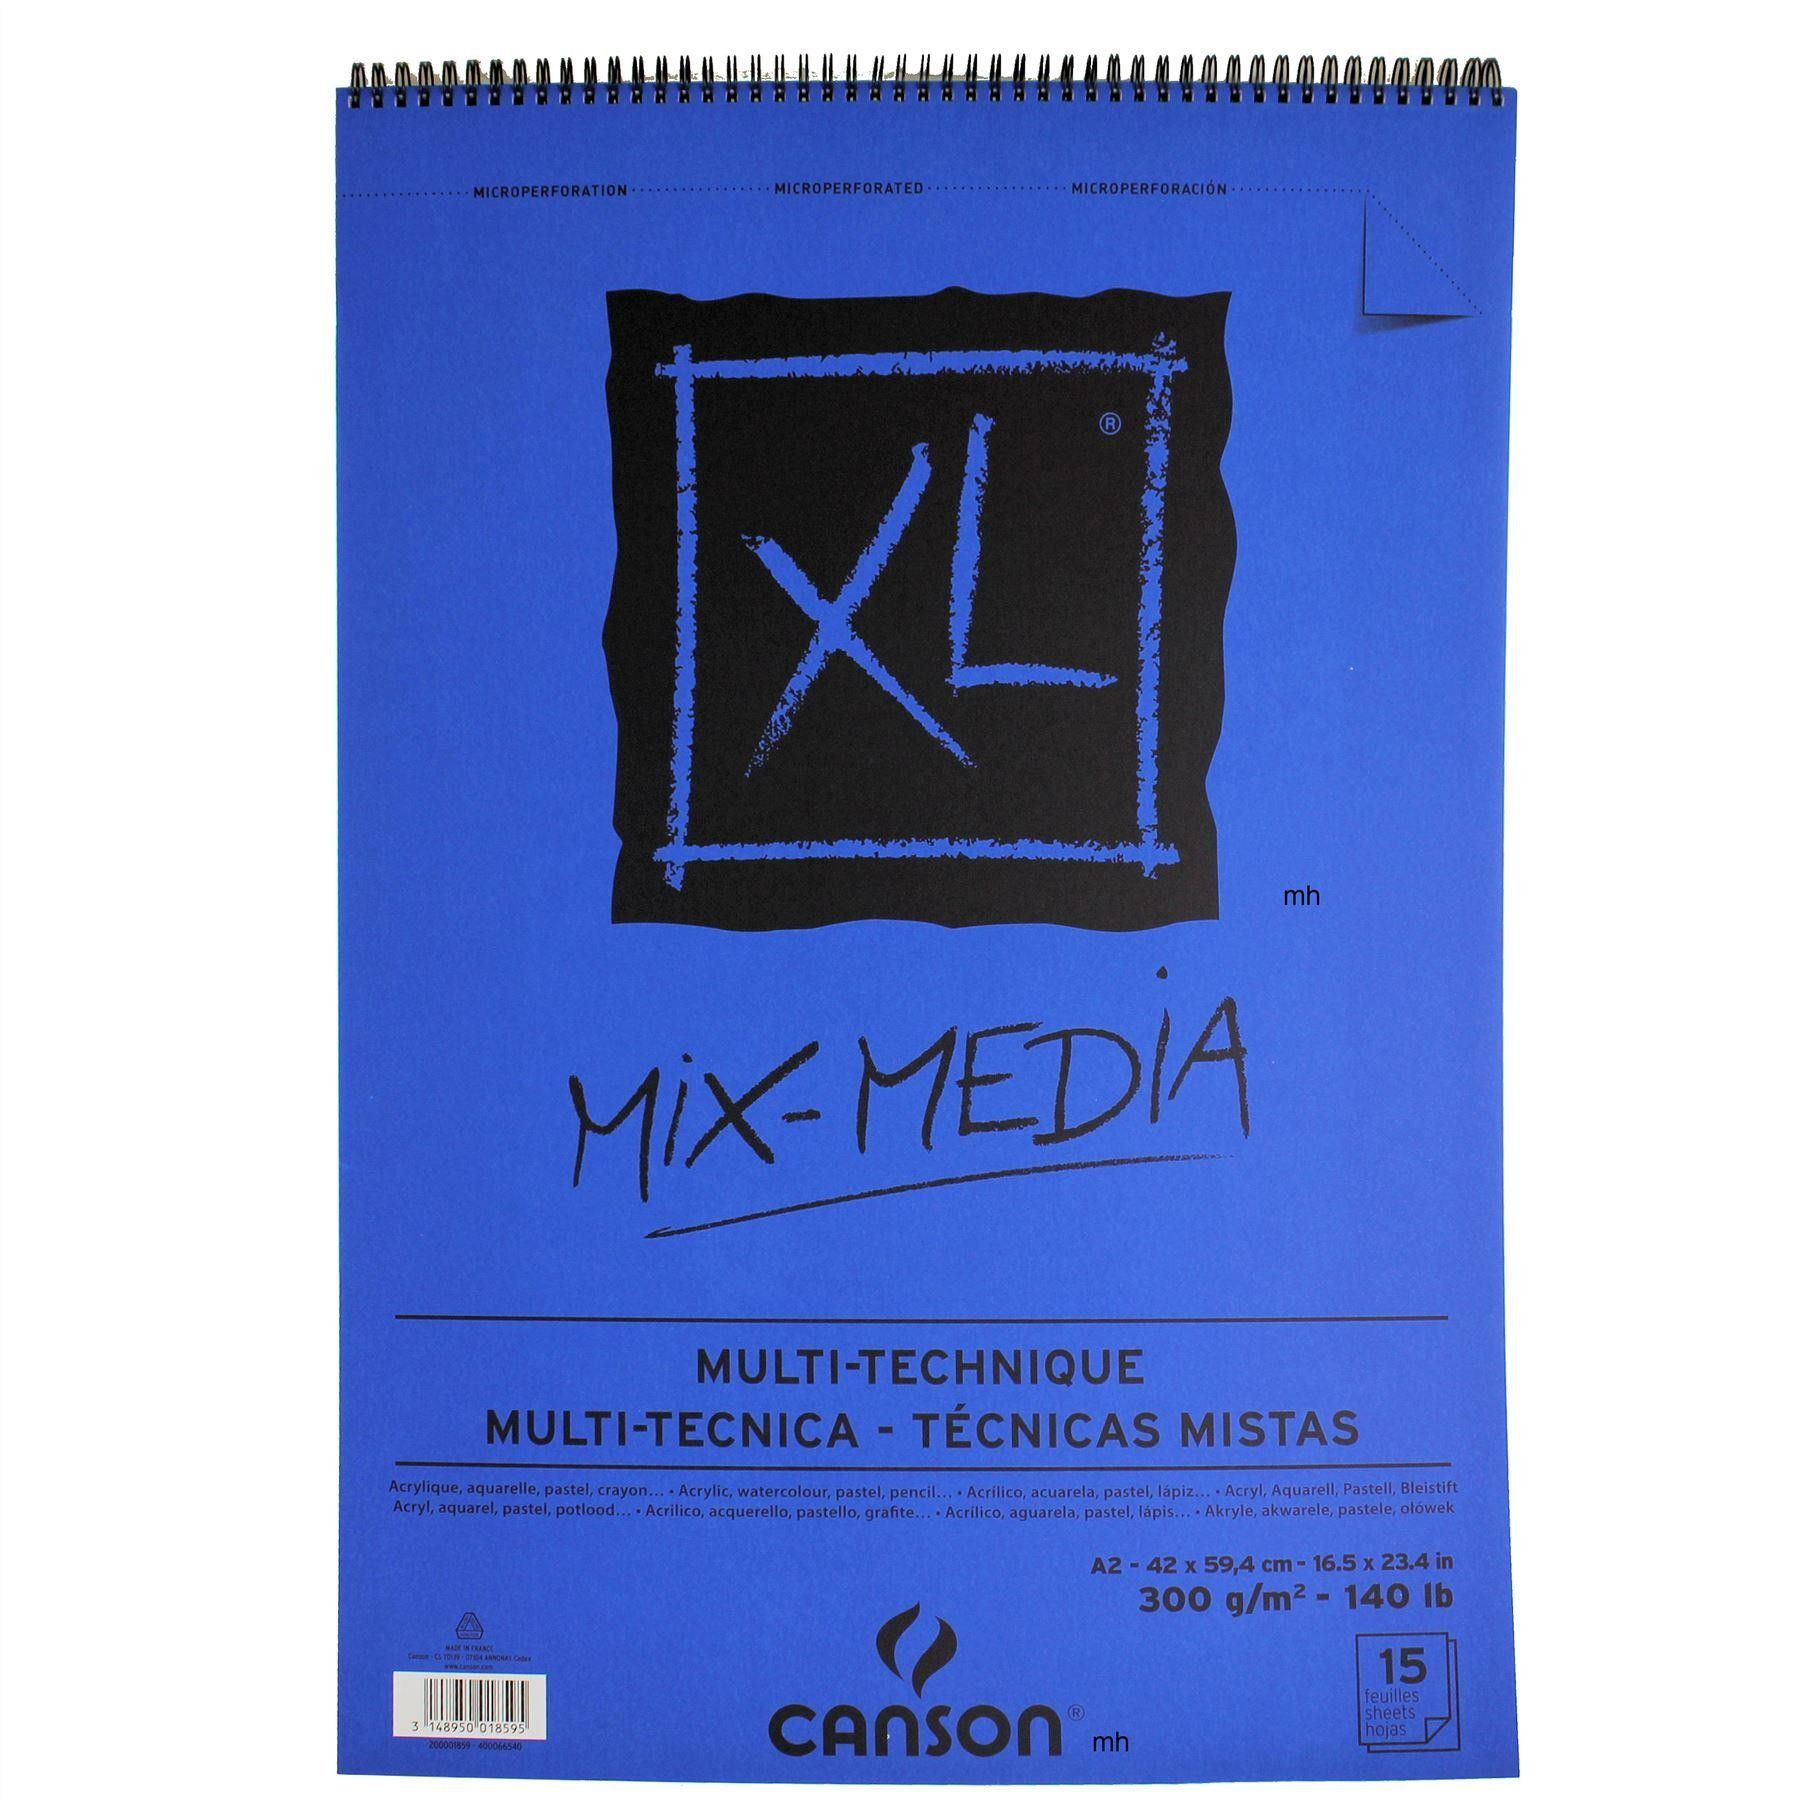 Canson Xl Series Mix Media Pad Canson Xl Mixed Media Paper Pad 300gsm 30 Sheets Sketch Paper